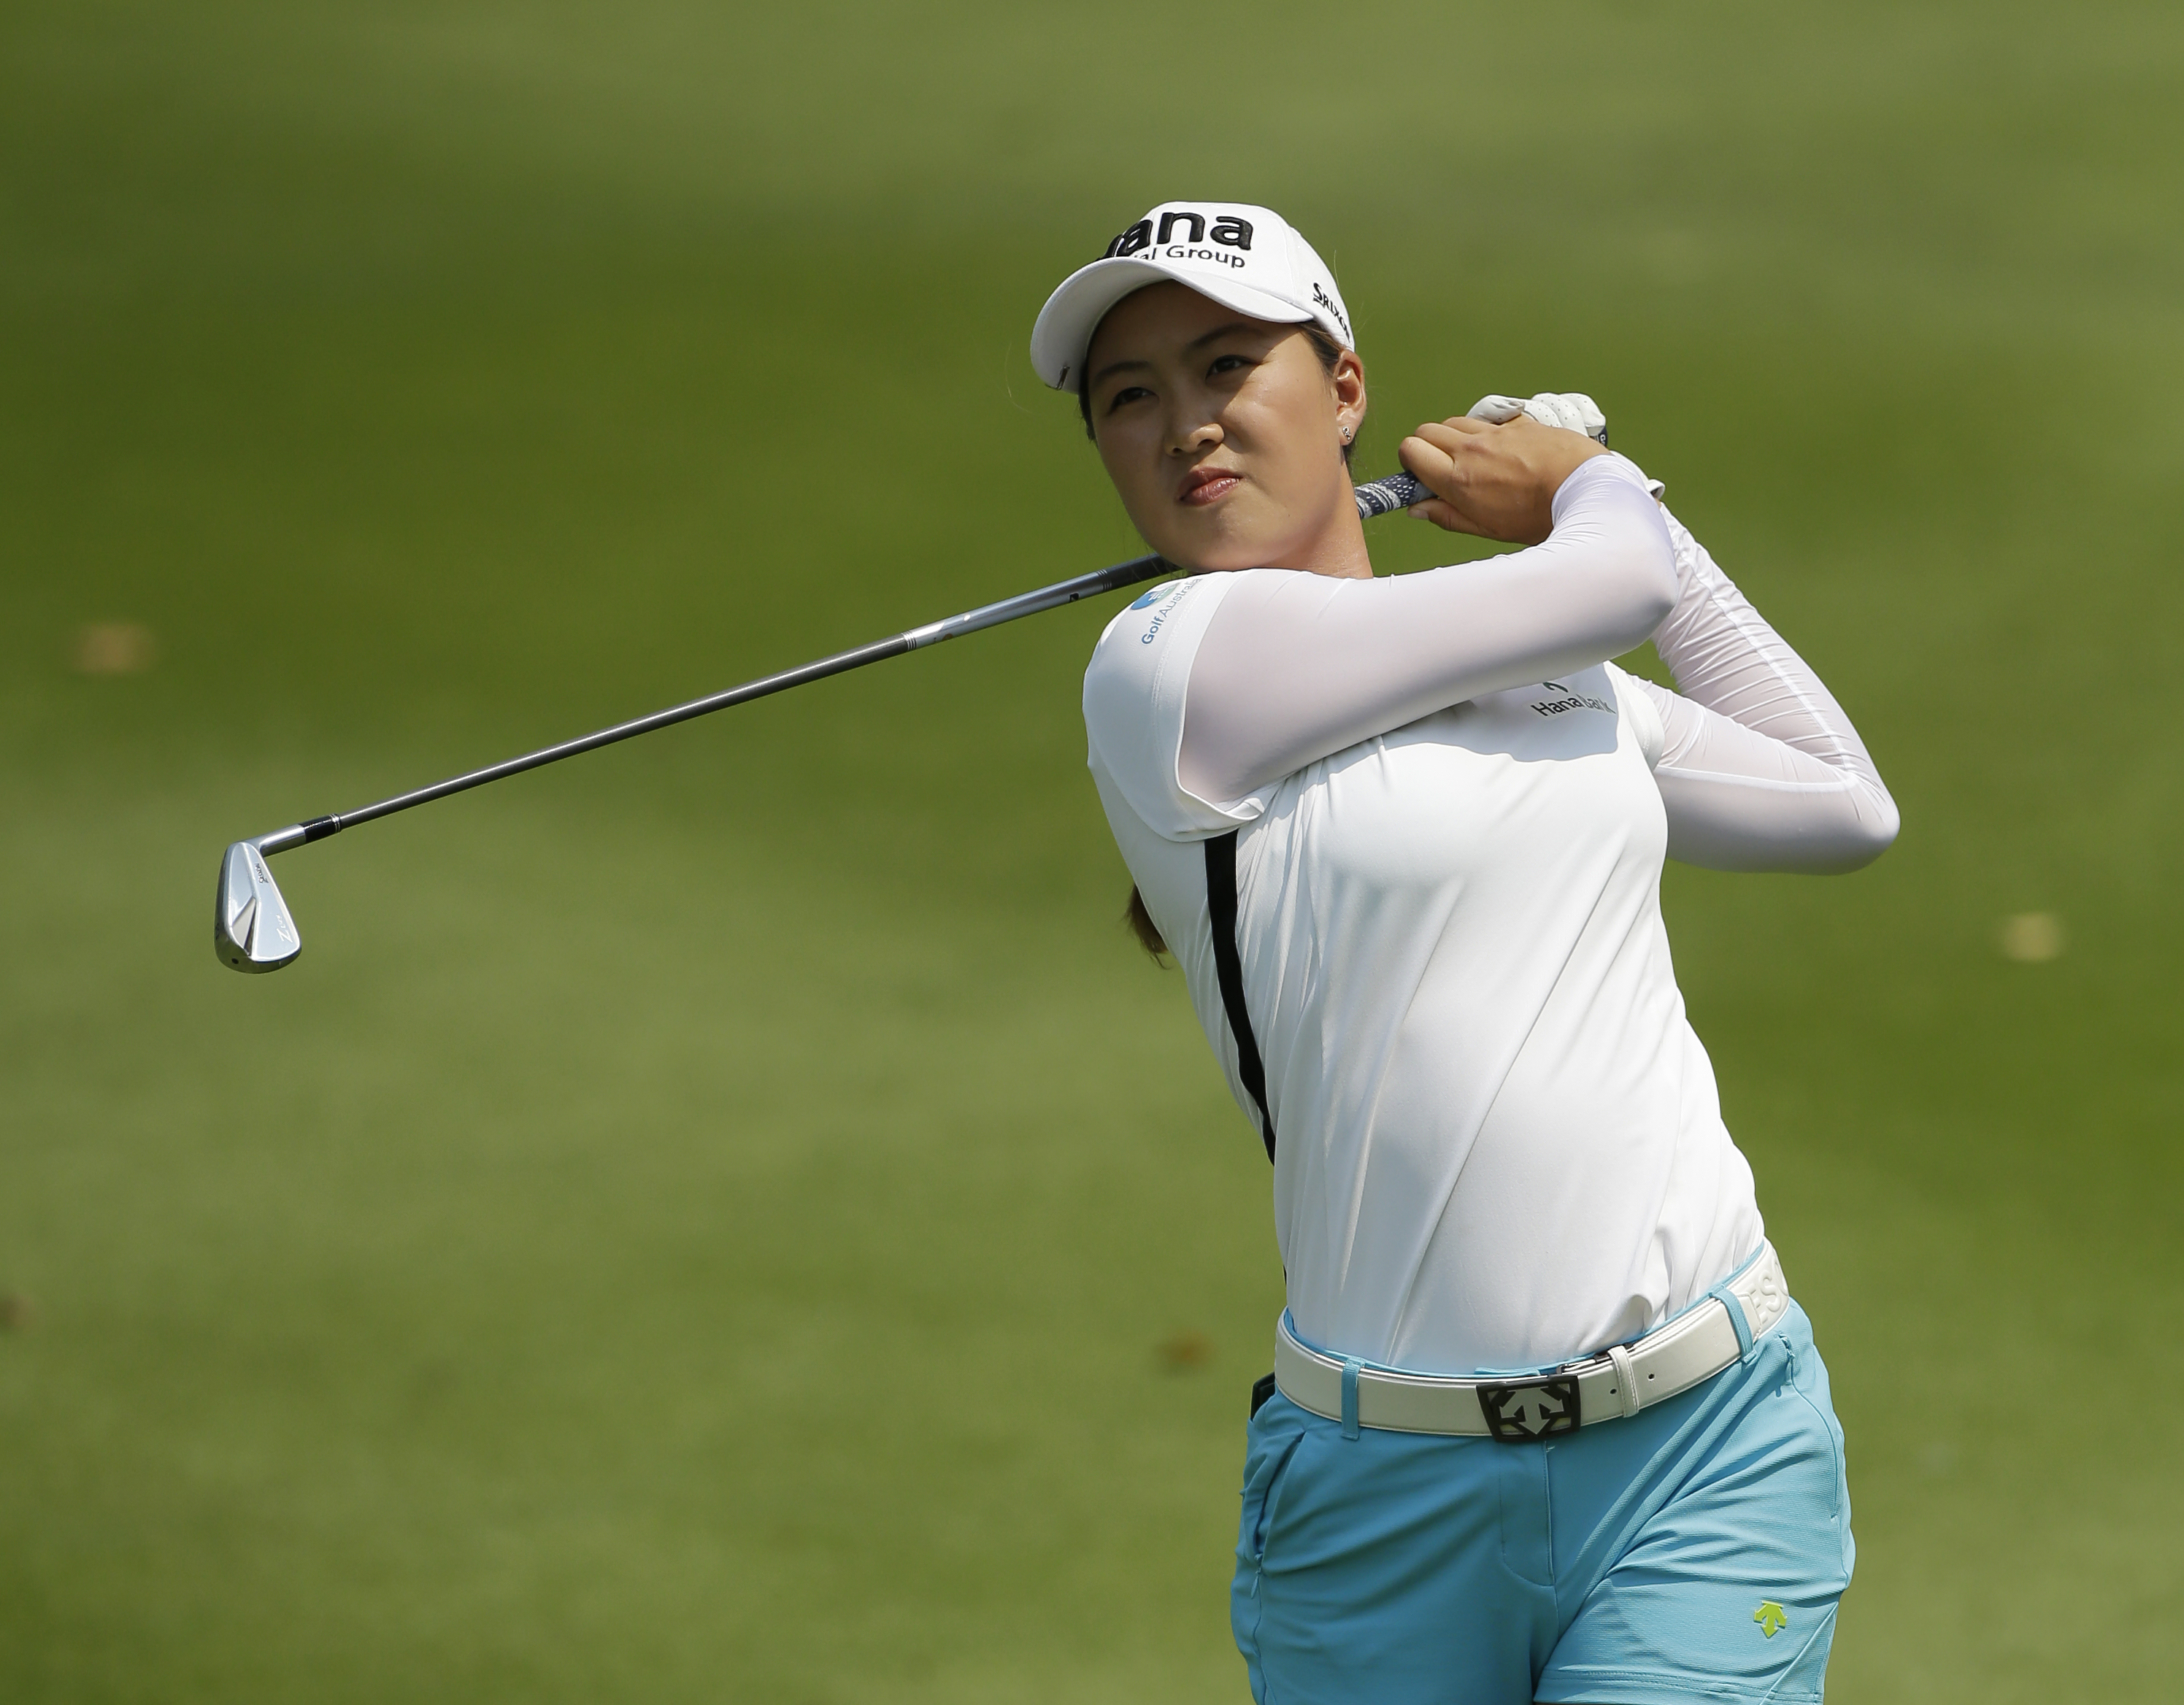 Minjee Lee of Australia plays a shot from a fairway on 9th during the final round of the LPGA Thailand golf tournament in Pattaya, southern Thailand, Sunday, Feb. 28, 2016. (AP Photo/Sakchai Lalit)